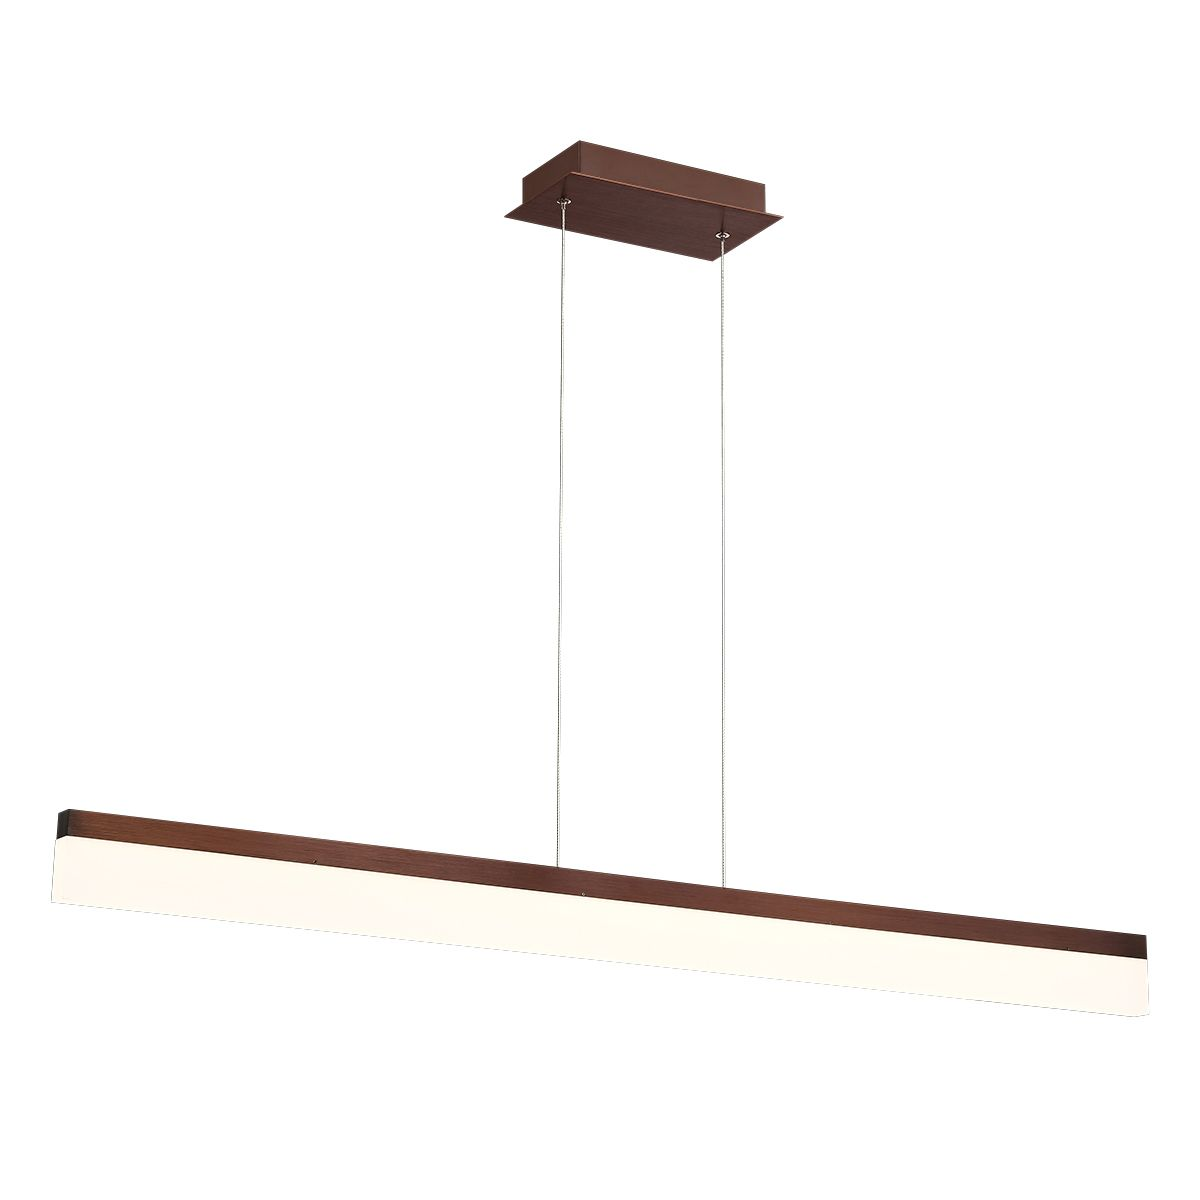 Alcon Lighting 12162 Br Barra Large 46 5 Inch Bronze Finish Led Architectural Linear Pendant